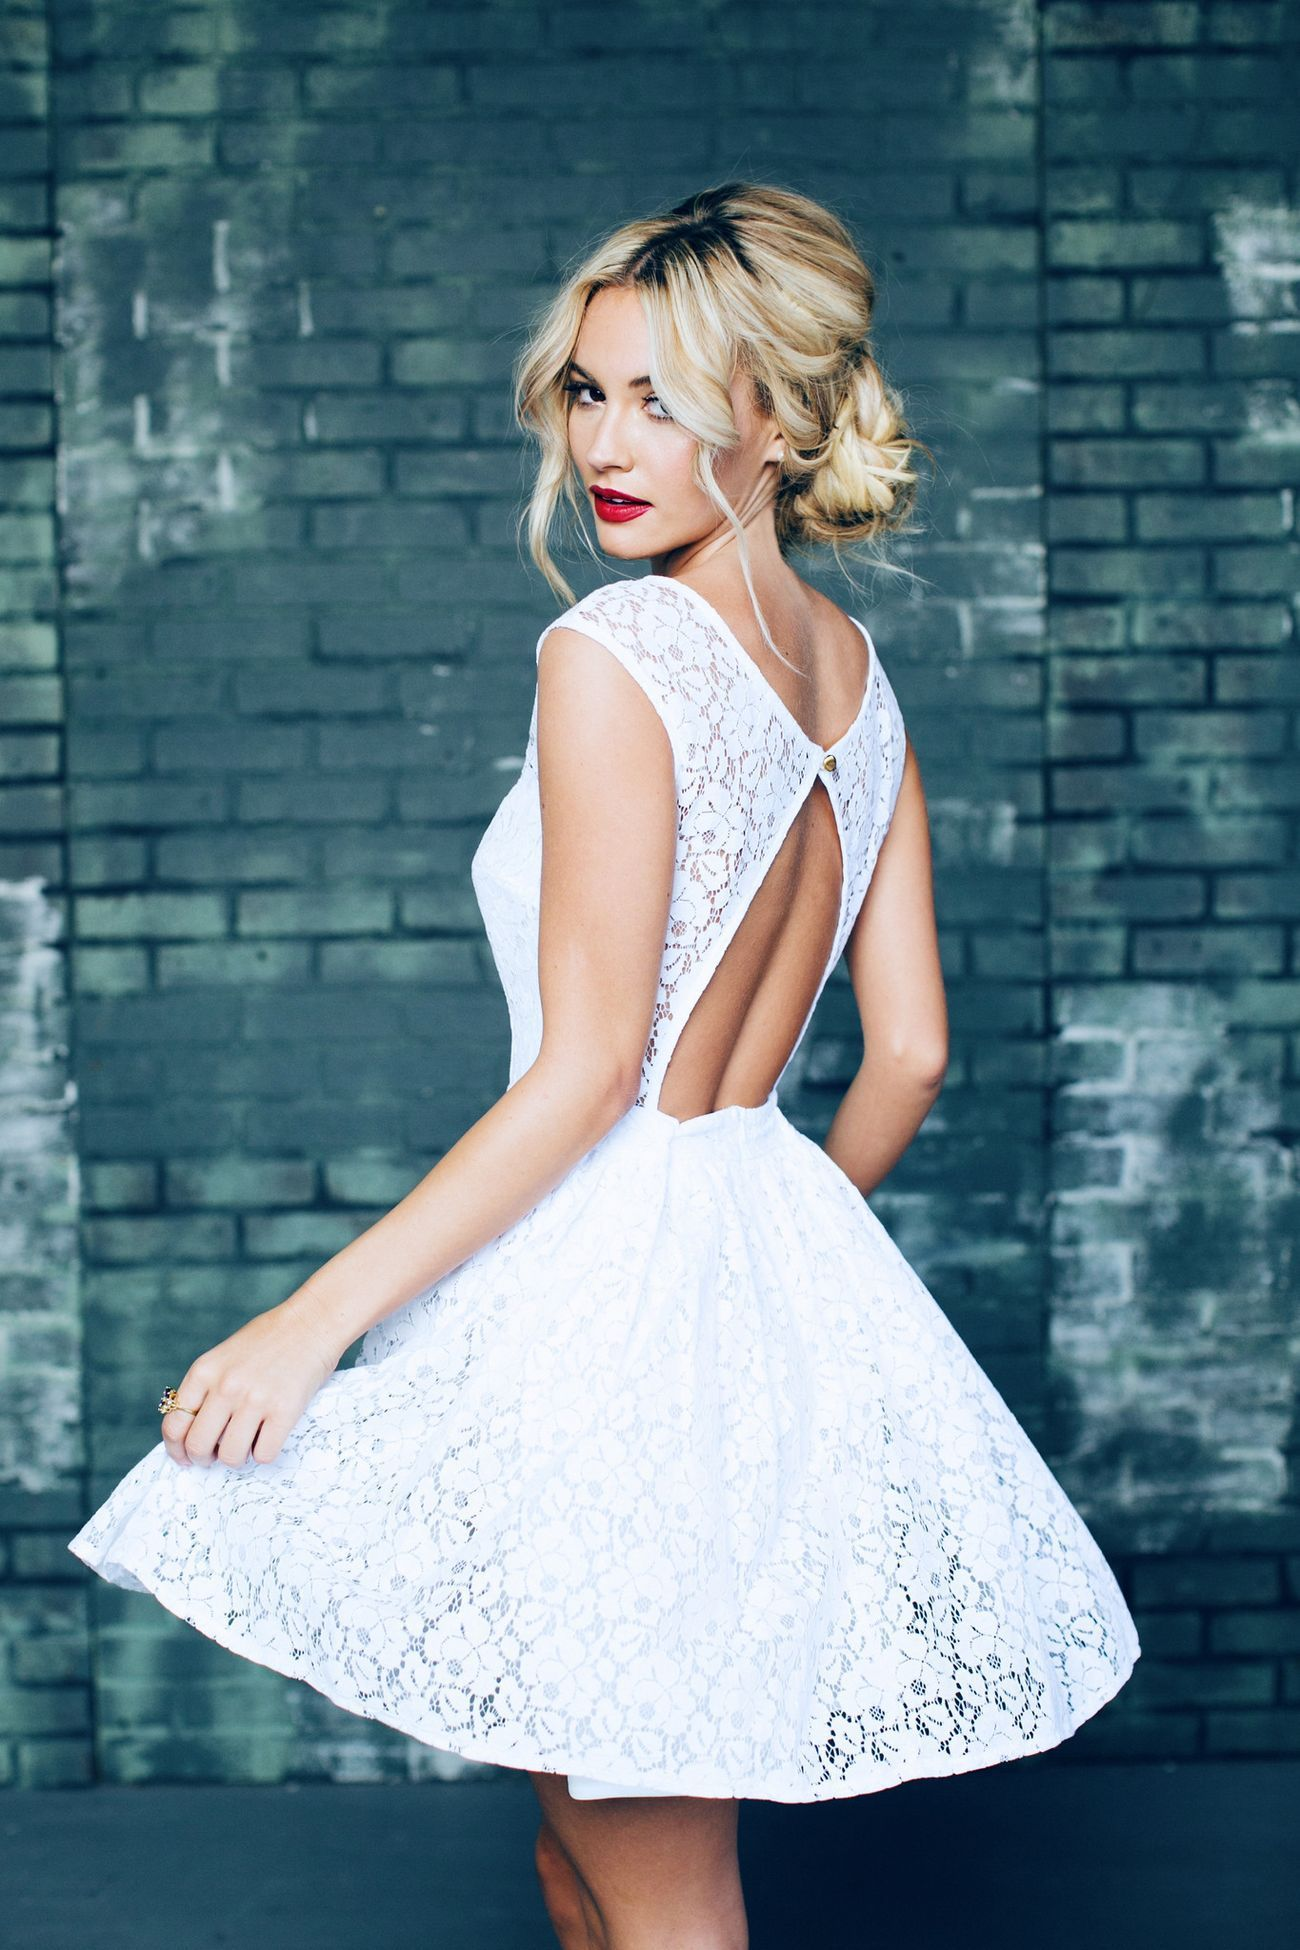 Bryana Holly - Lurelly Collection 2015, http://celebshoot.net/bryana ...